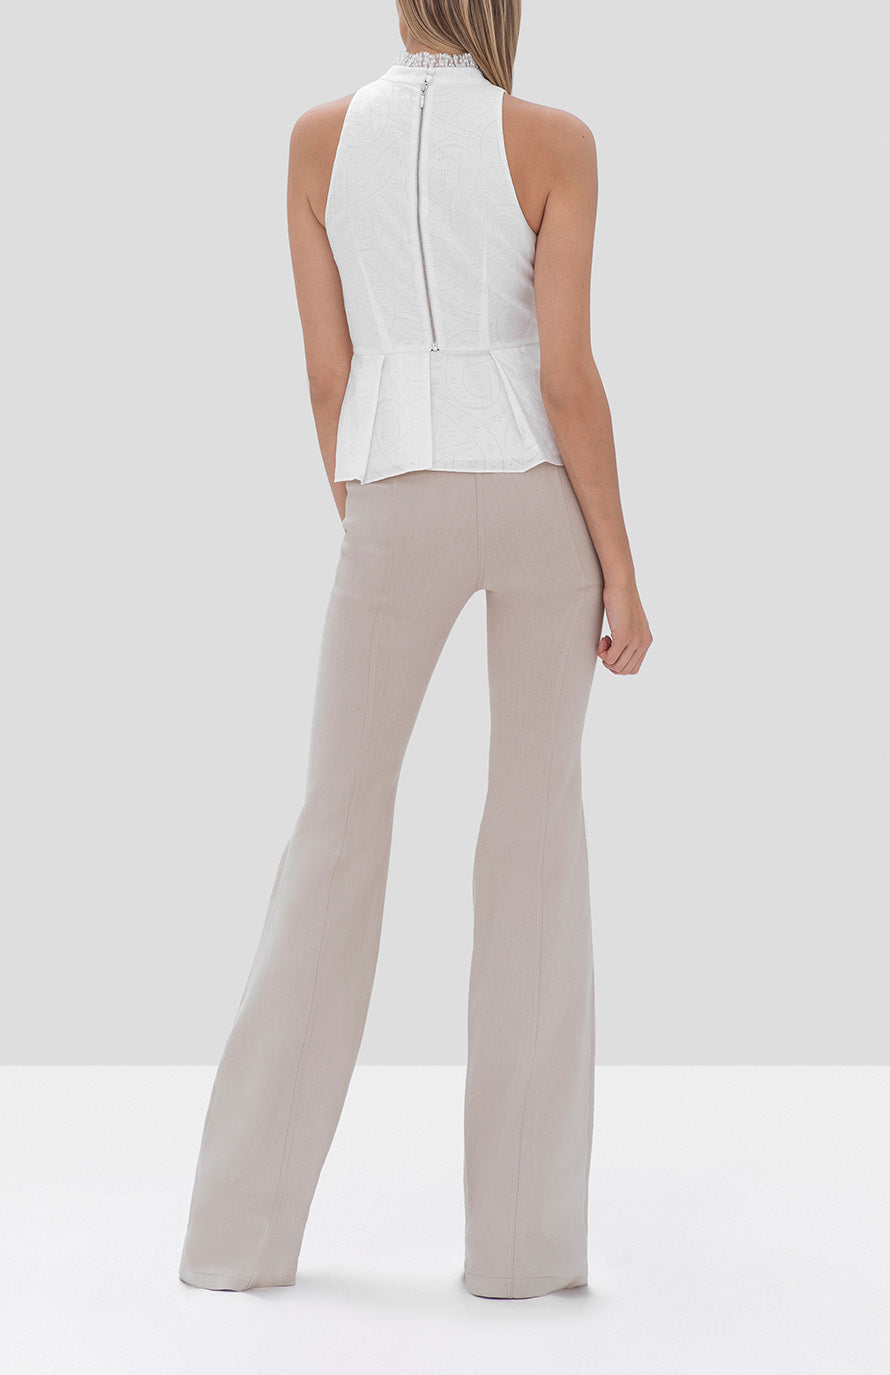 Alexis Helene Pant in Oyster Denim and Leta Top in White from the Fall Winter 2019 Ready To Wear Collection - Rear View